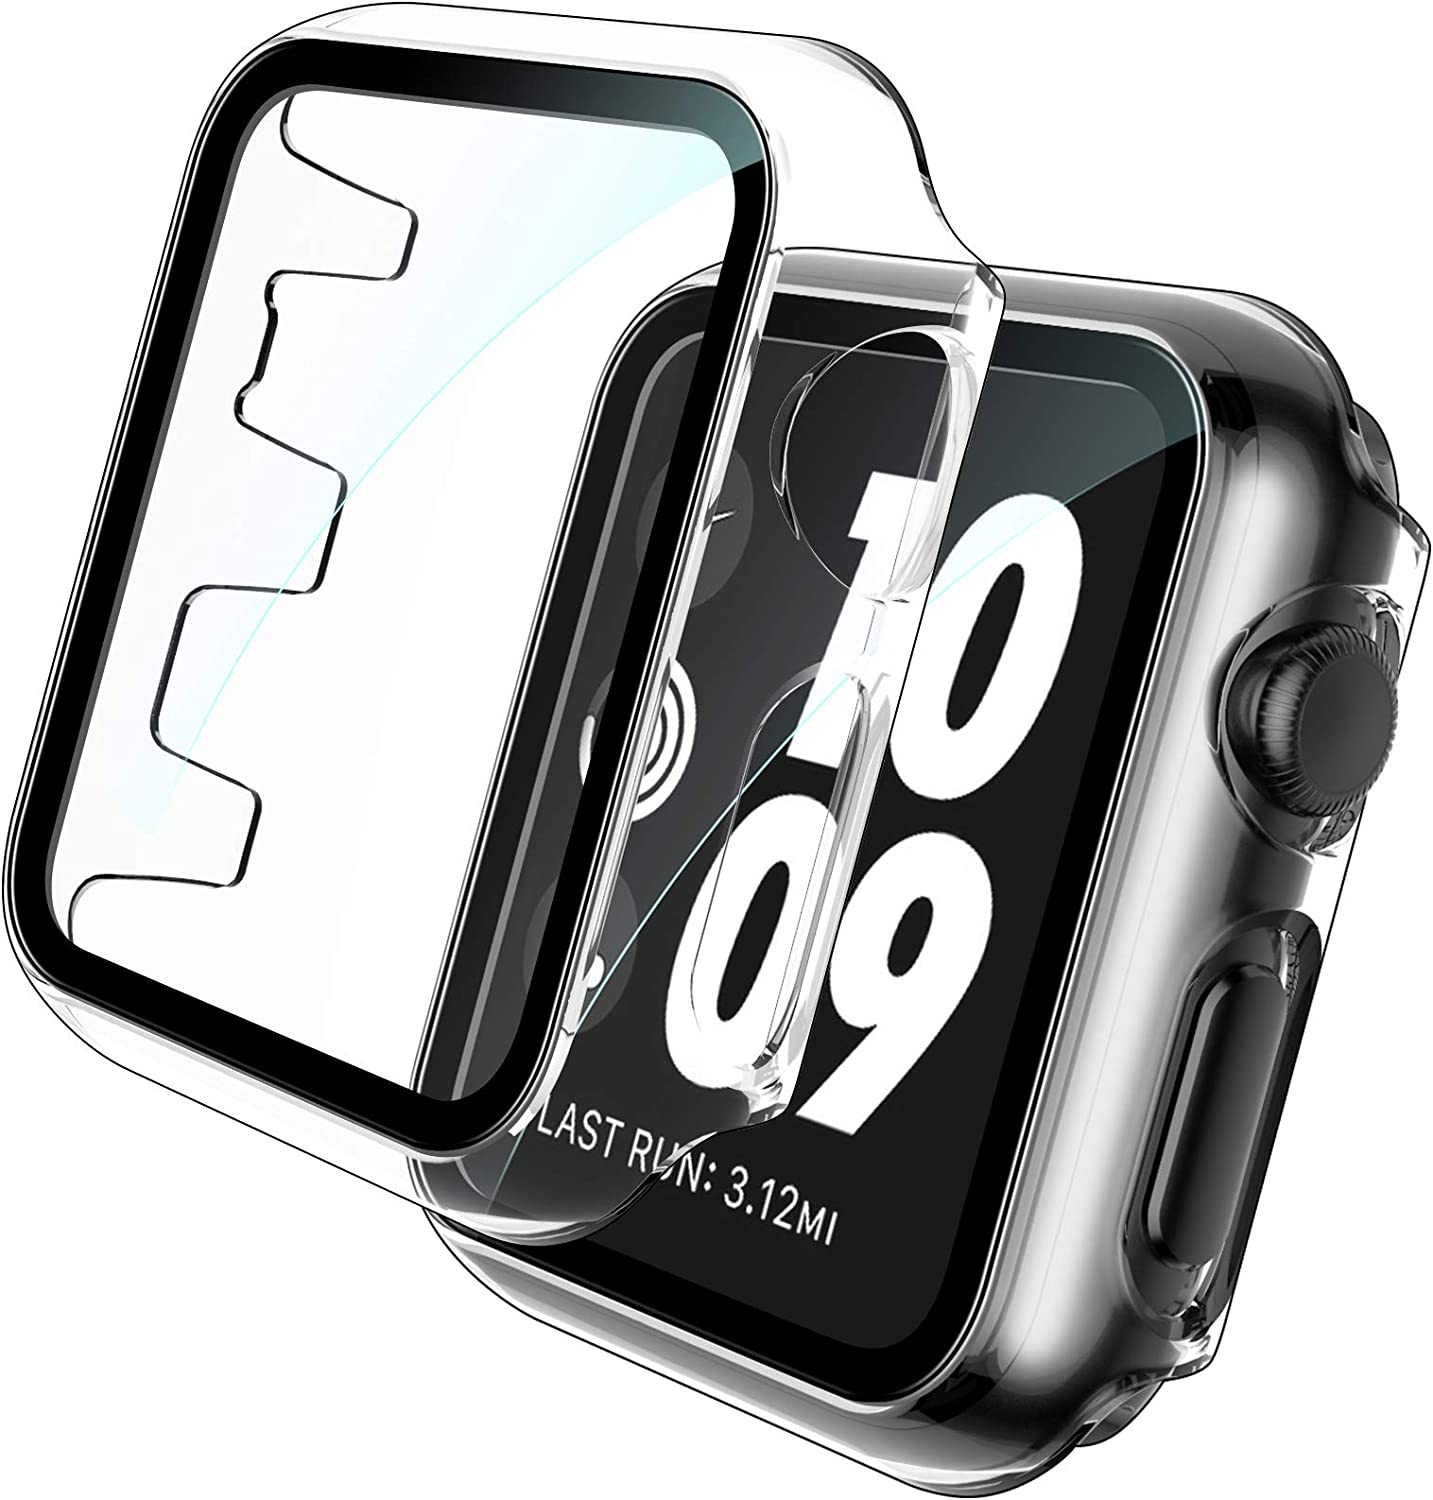 TOCOL 2 Pack Case Compatible with Apple Watch 42mm Series 3 2 1 with Built-in Tempered Glass Screen Protector - All-Around Ultra Thin Bumper Full Cover Hard PC Protective Case for iWatch 42mm - Clear